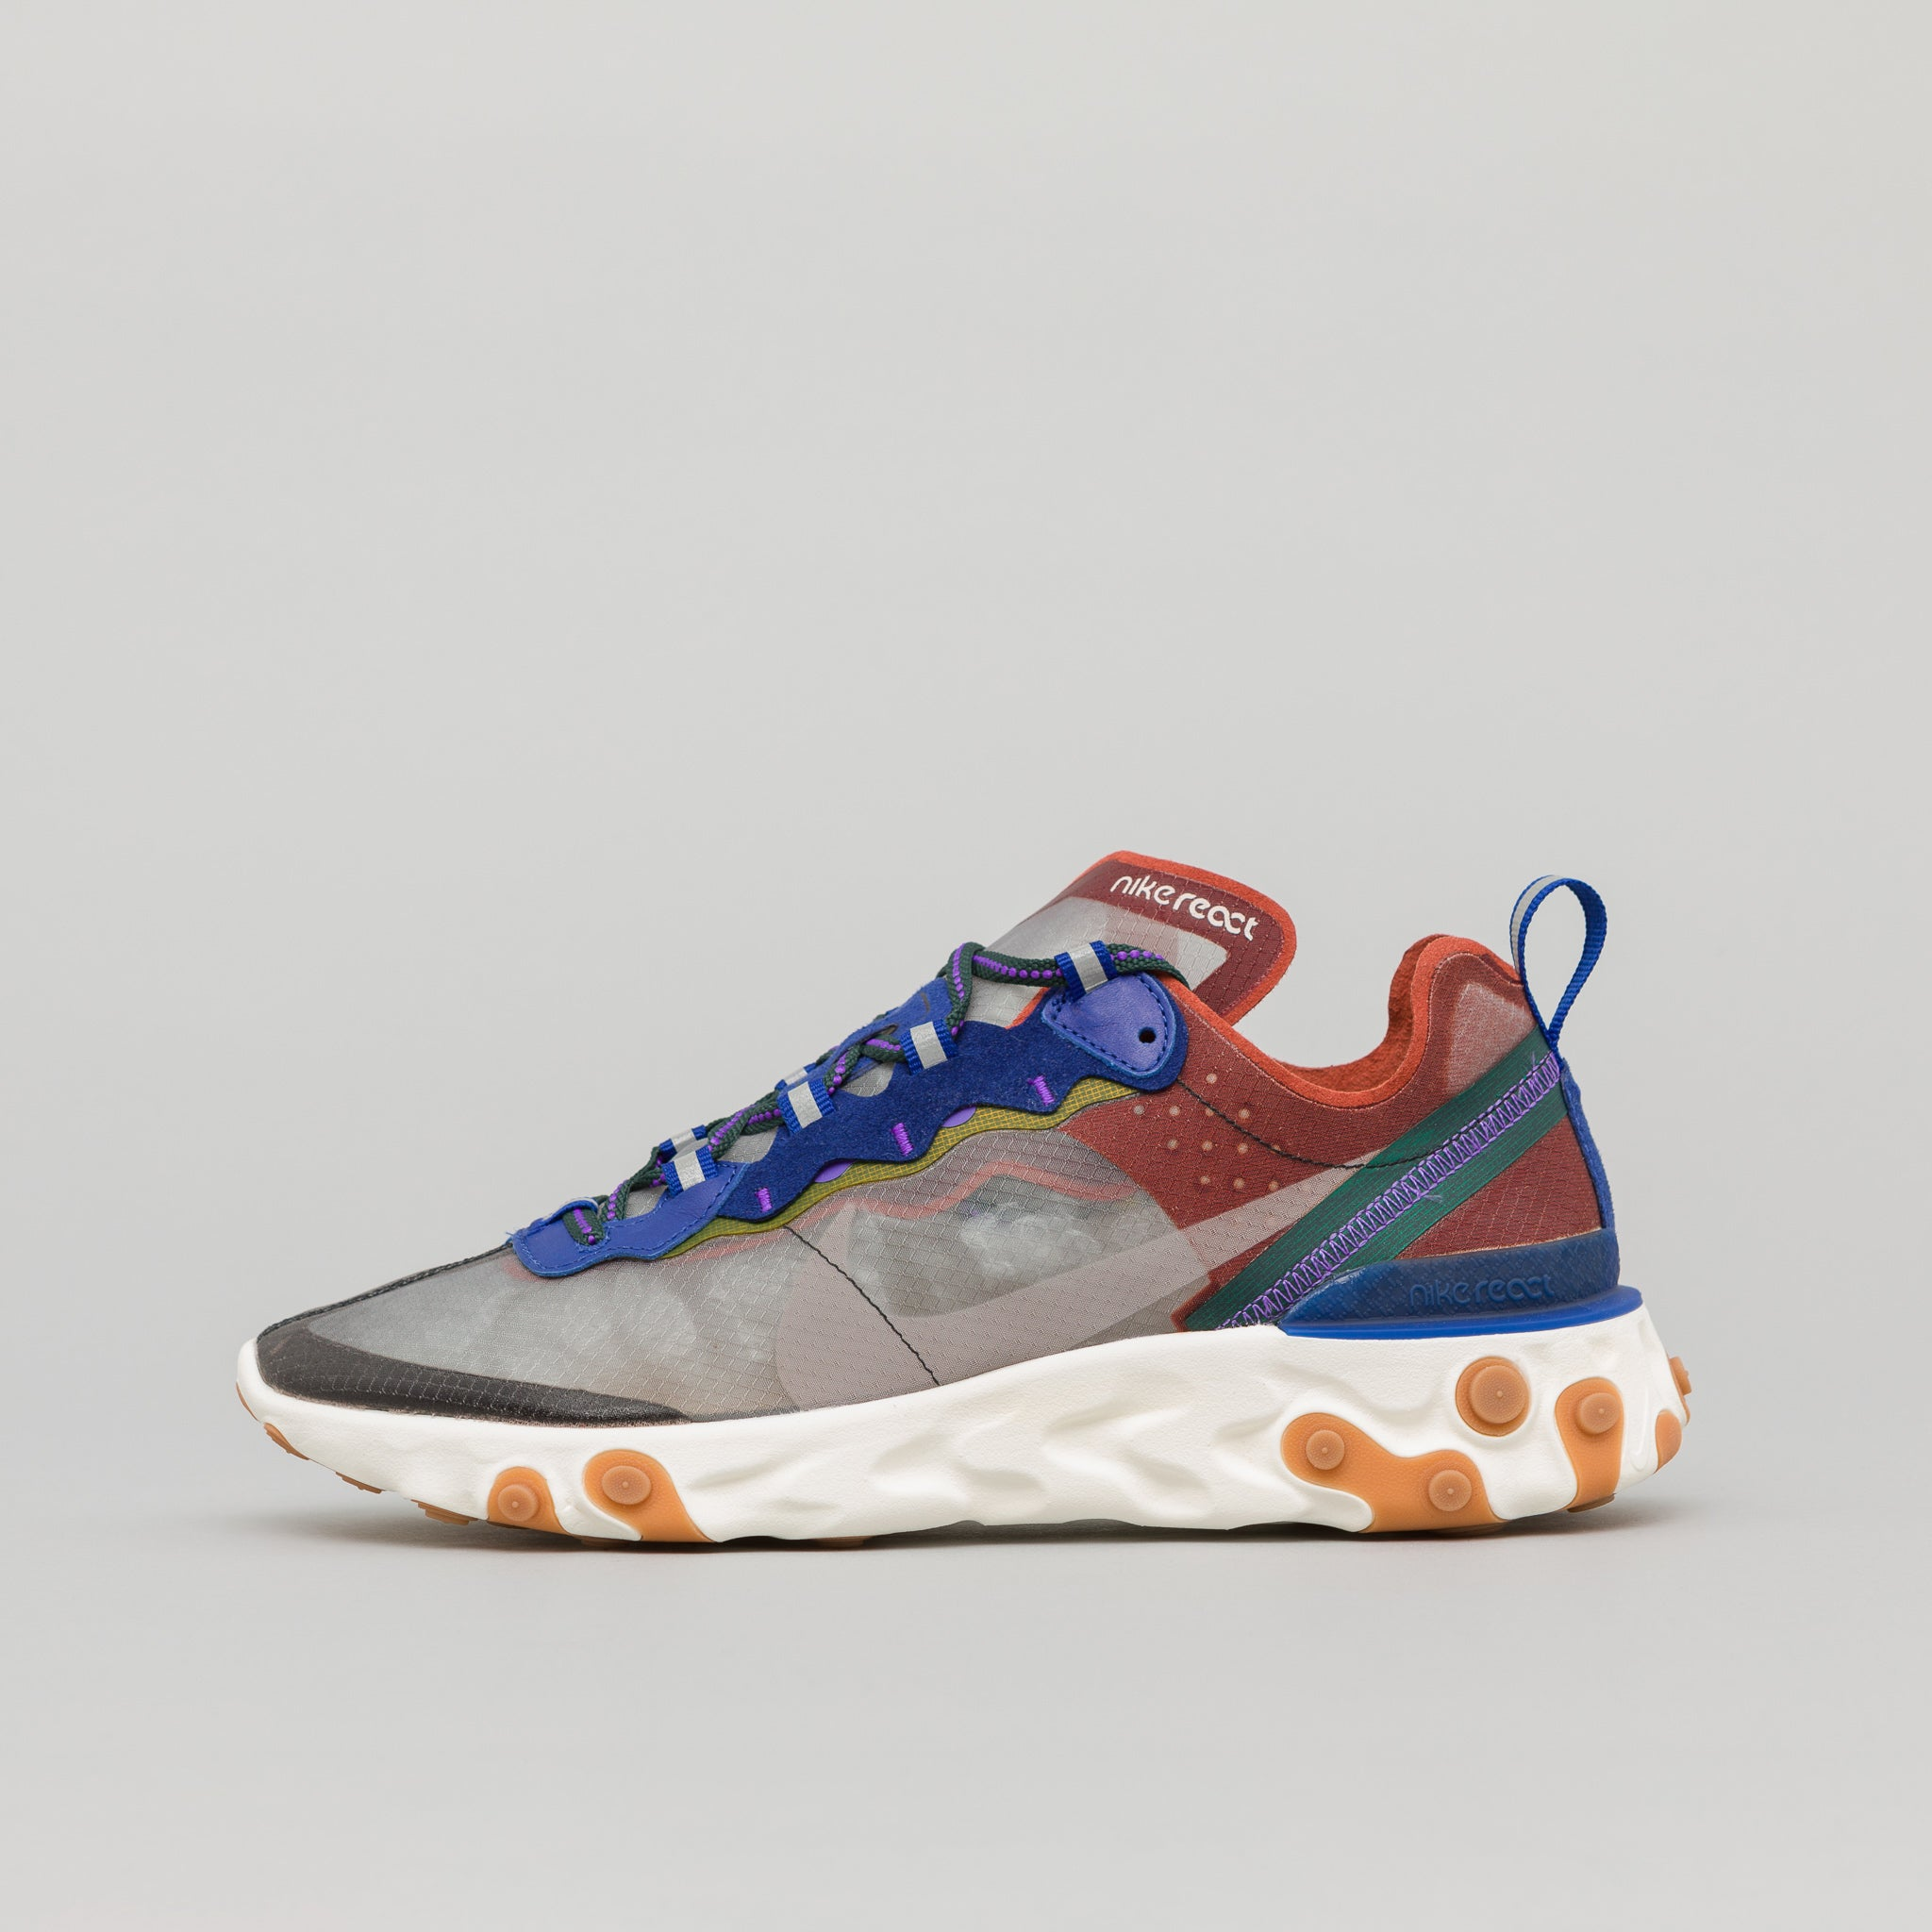 reputable site 595a4 e75d7 React Element 87 in Dusty Peach Grey · Nike